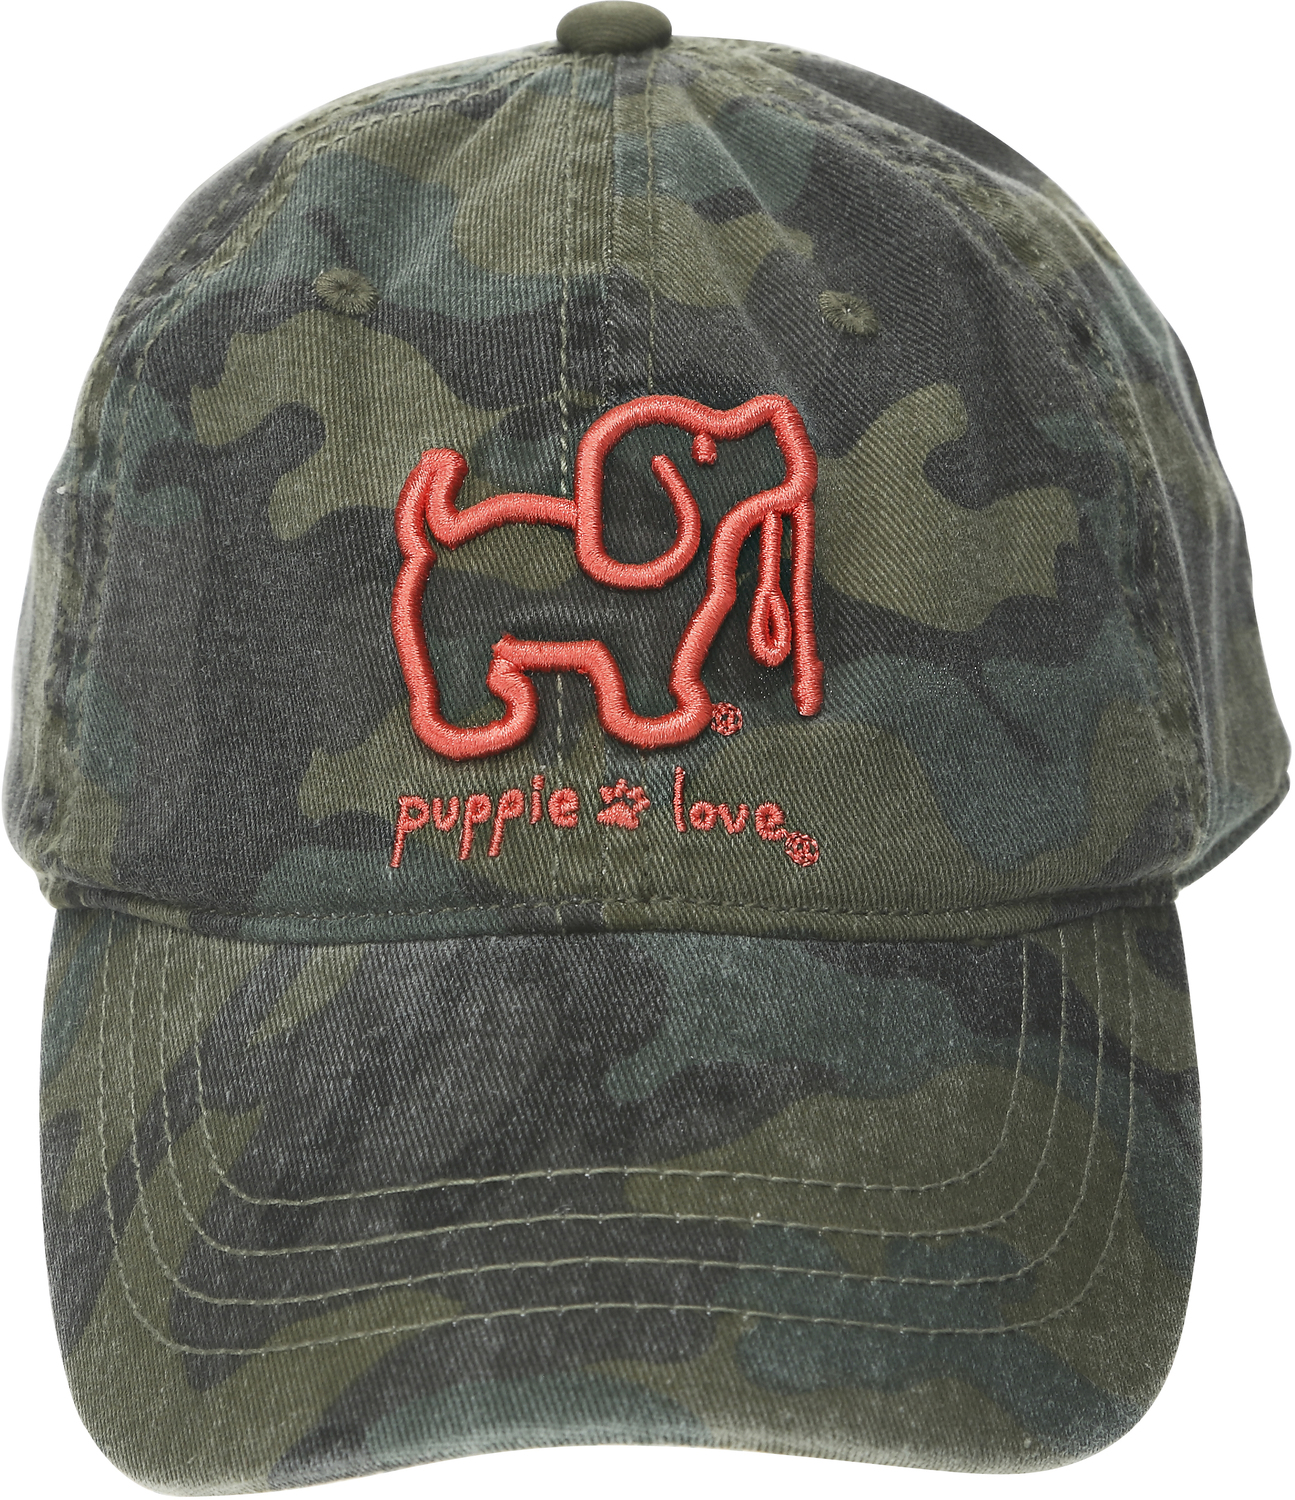 Camo by Puppie Love - Camo - Camo Adjustable Hat